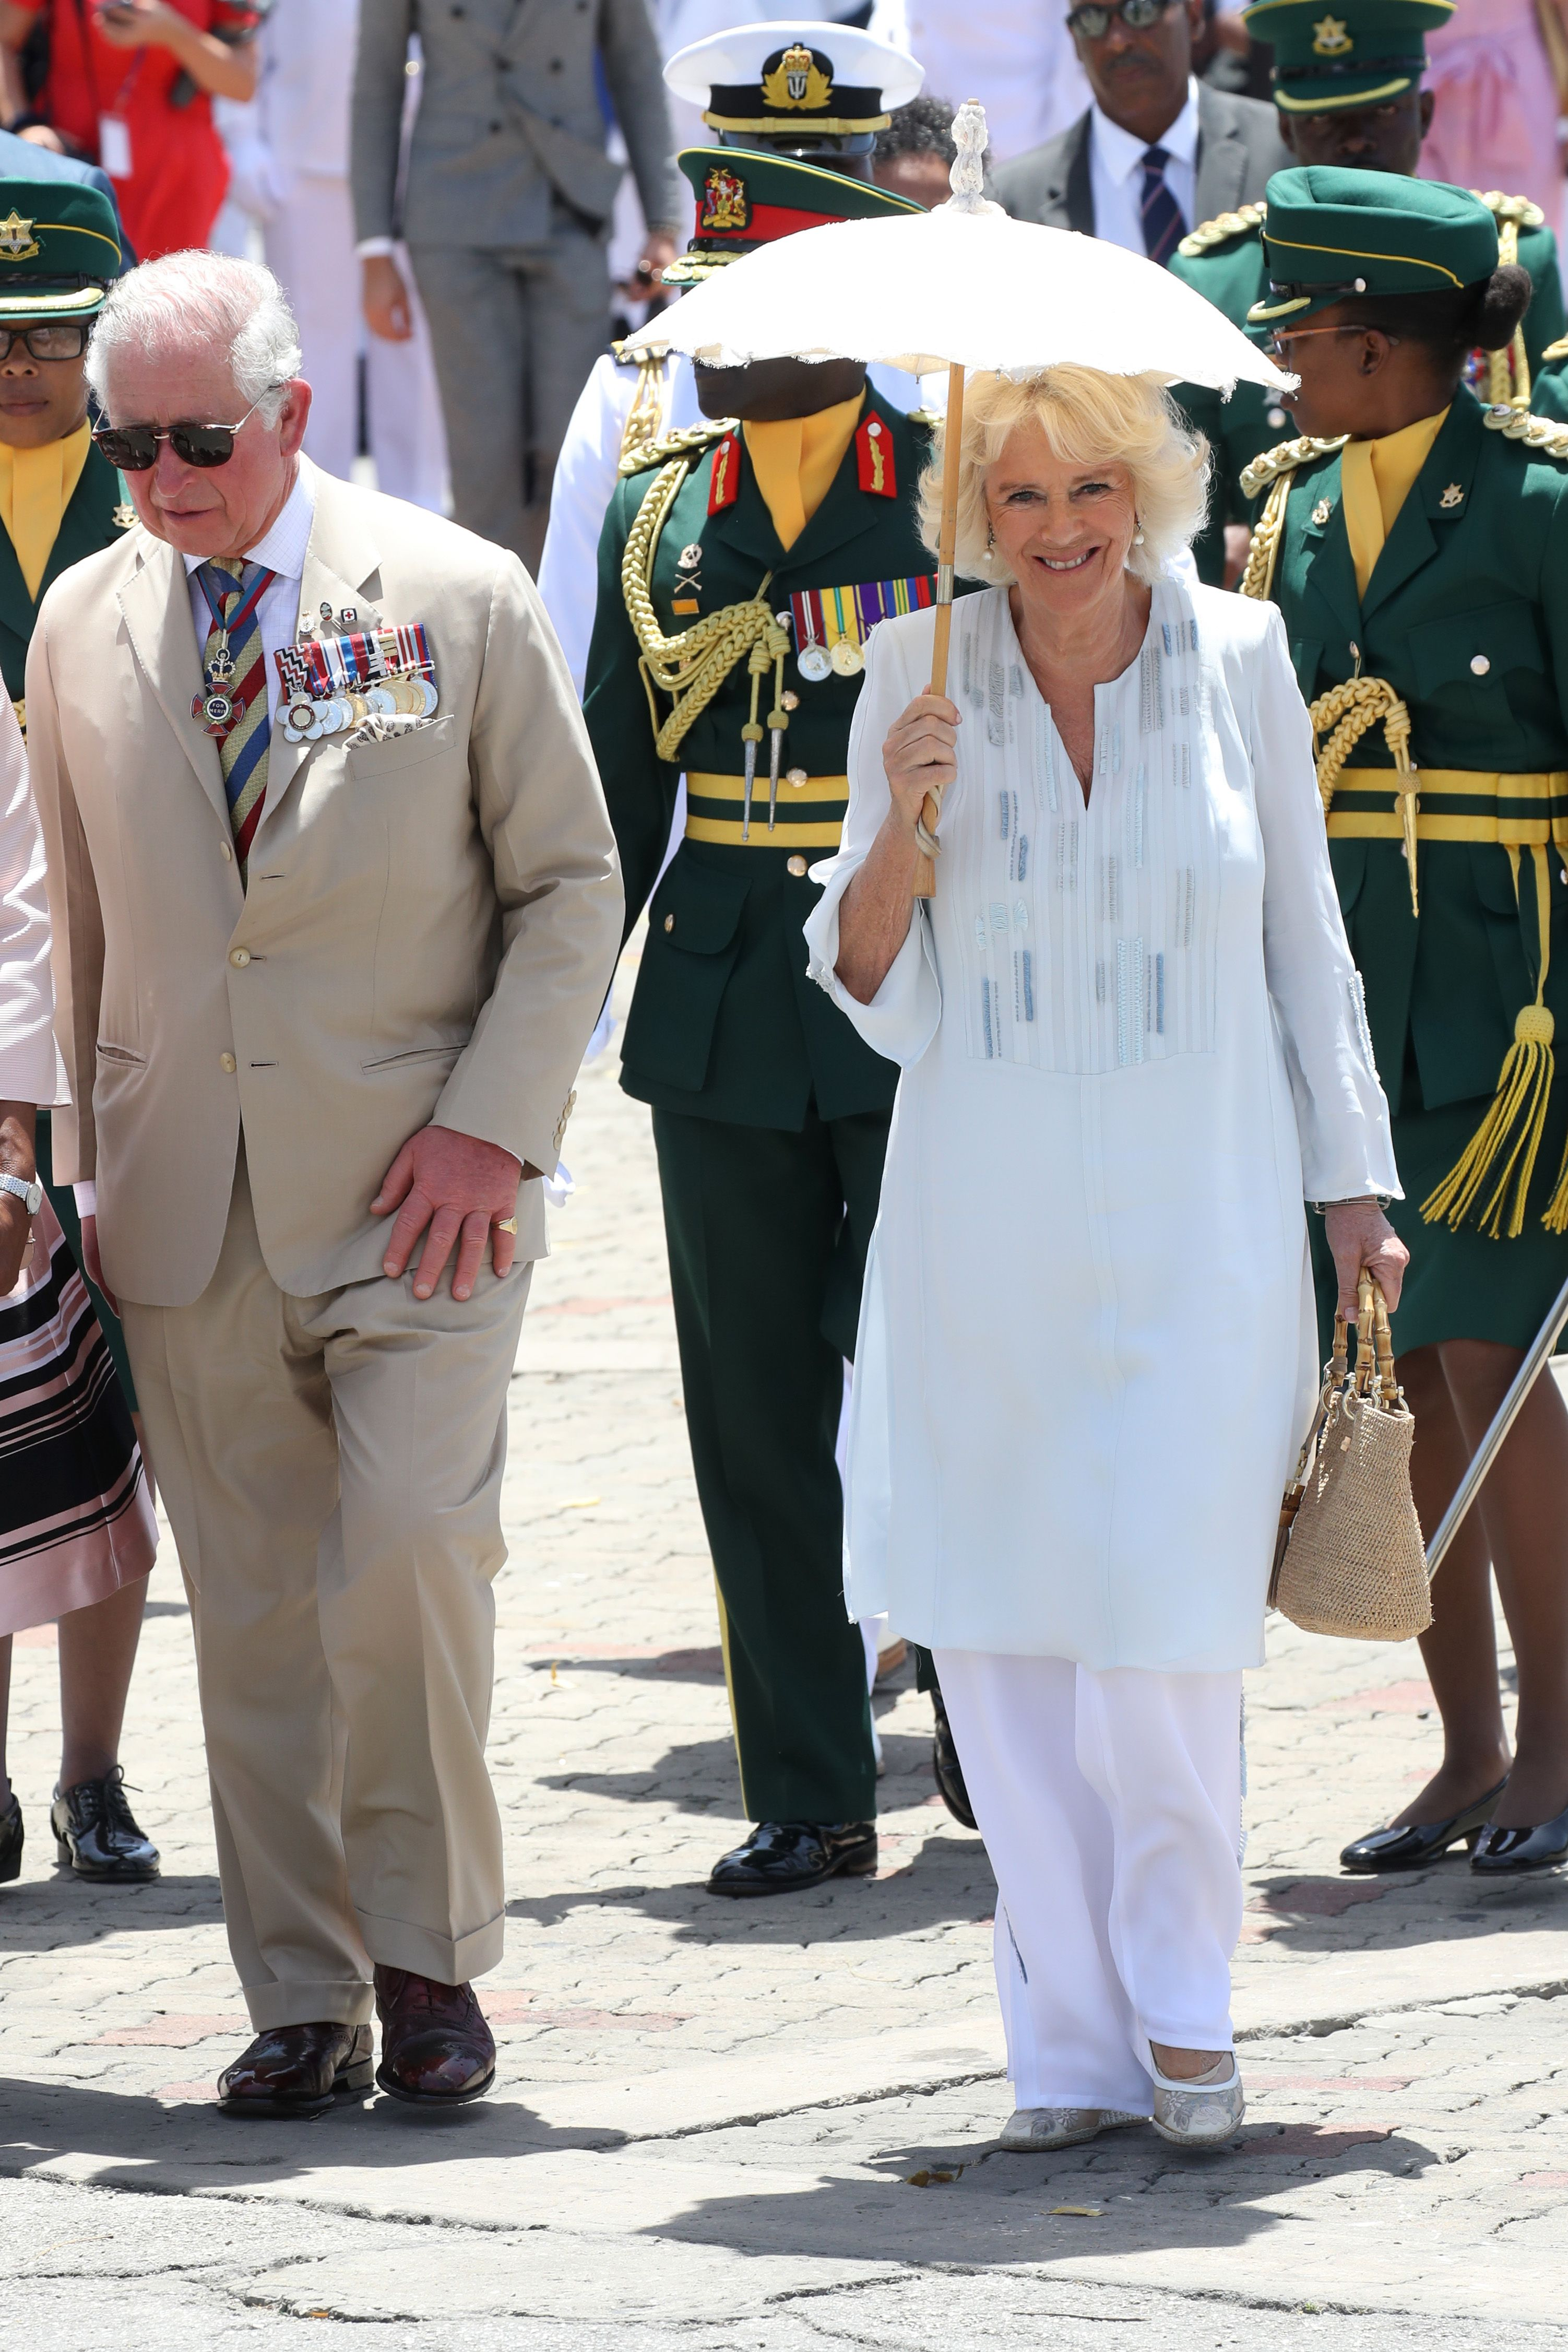 On arrival in Barbados, the Duchess of Cornwall stepped out in a light blue caftan, white pants, a straw top handle bag, and a white cloth parasol.